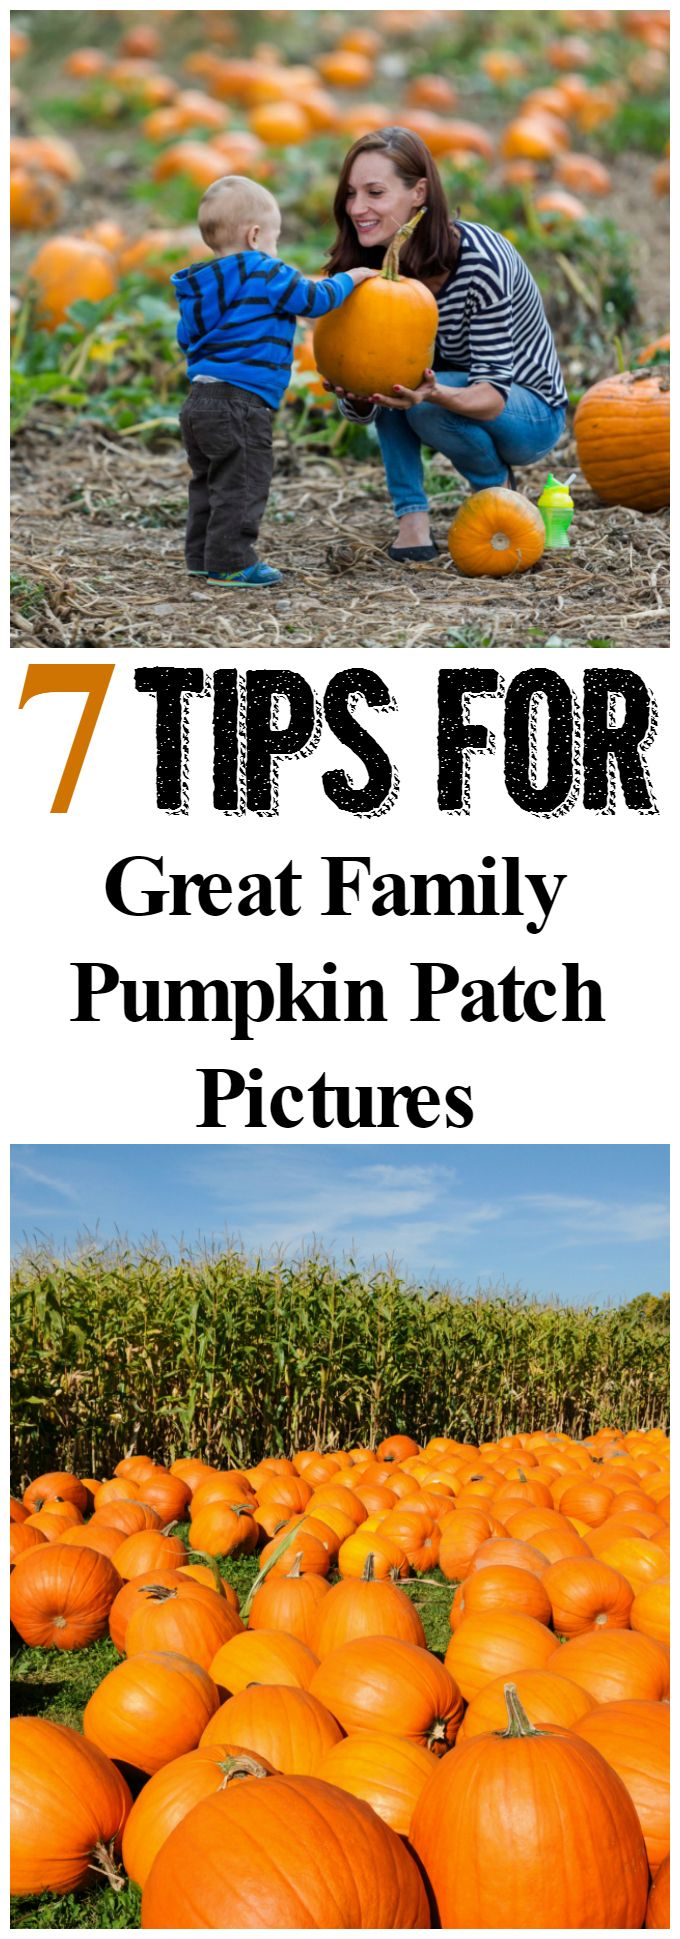 Channel your inner photographer this fall. Check out these 7 tips over on the blog to help you snap up some amazing family pumpkin patch pictures!